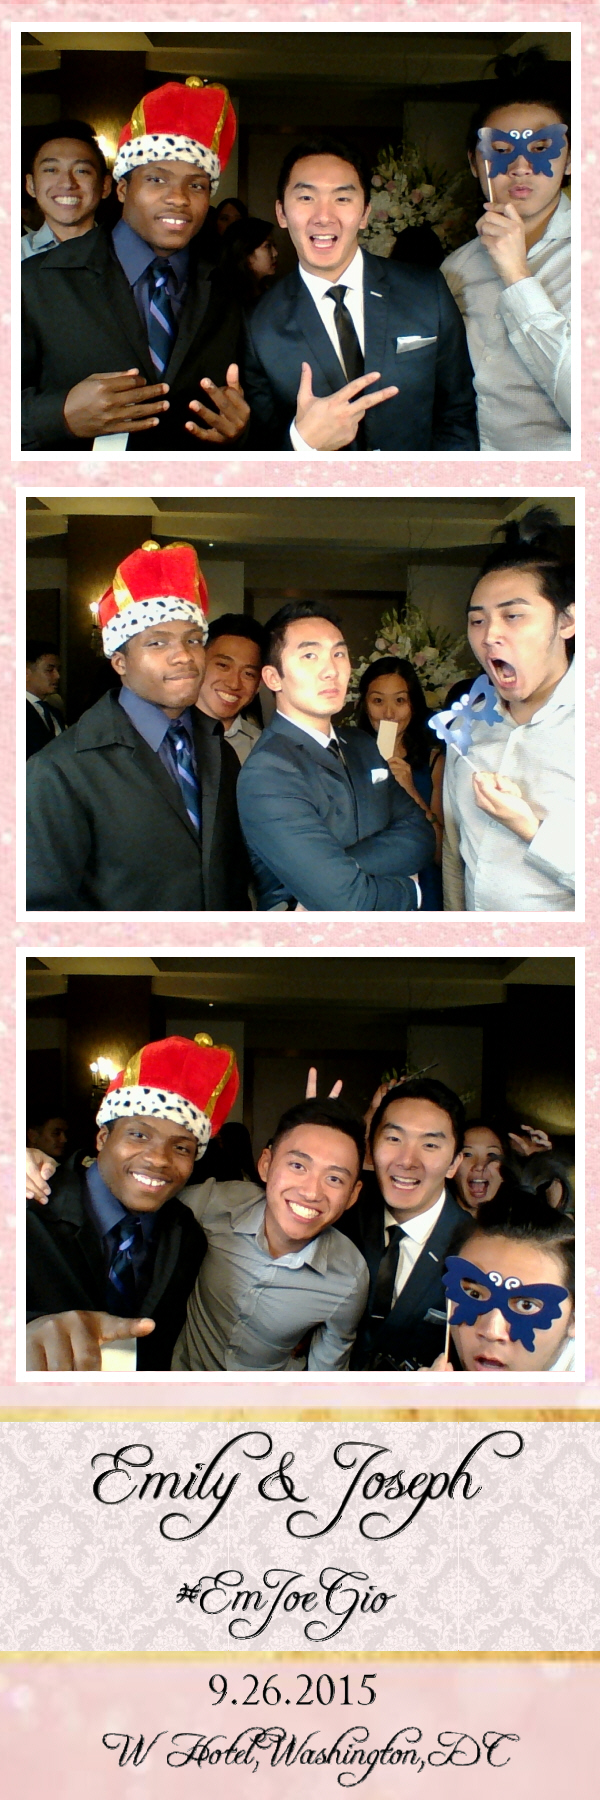 Guest House Events Photo Booth E&J (61).jpg